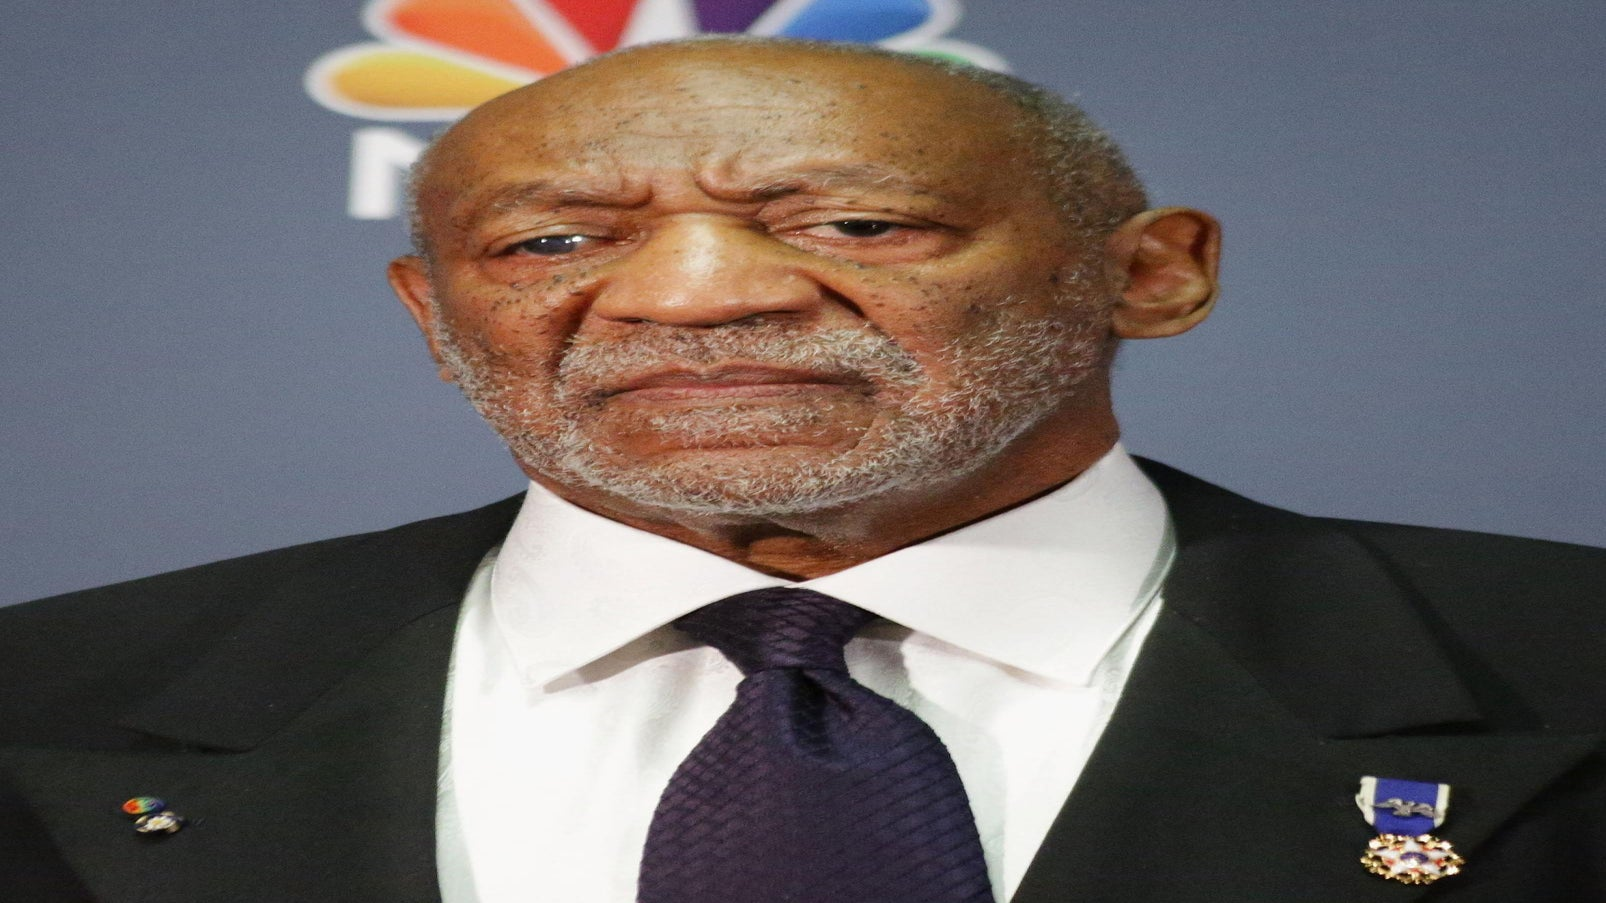 Court Documents Reveal Bill Cosby Admitted to Drugging Women